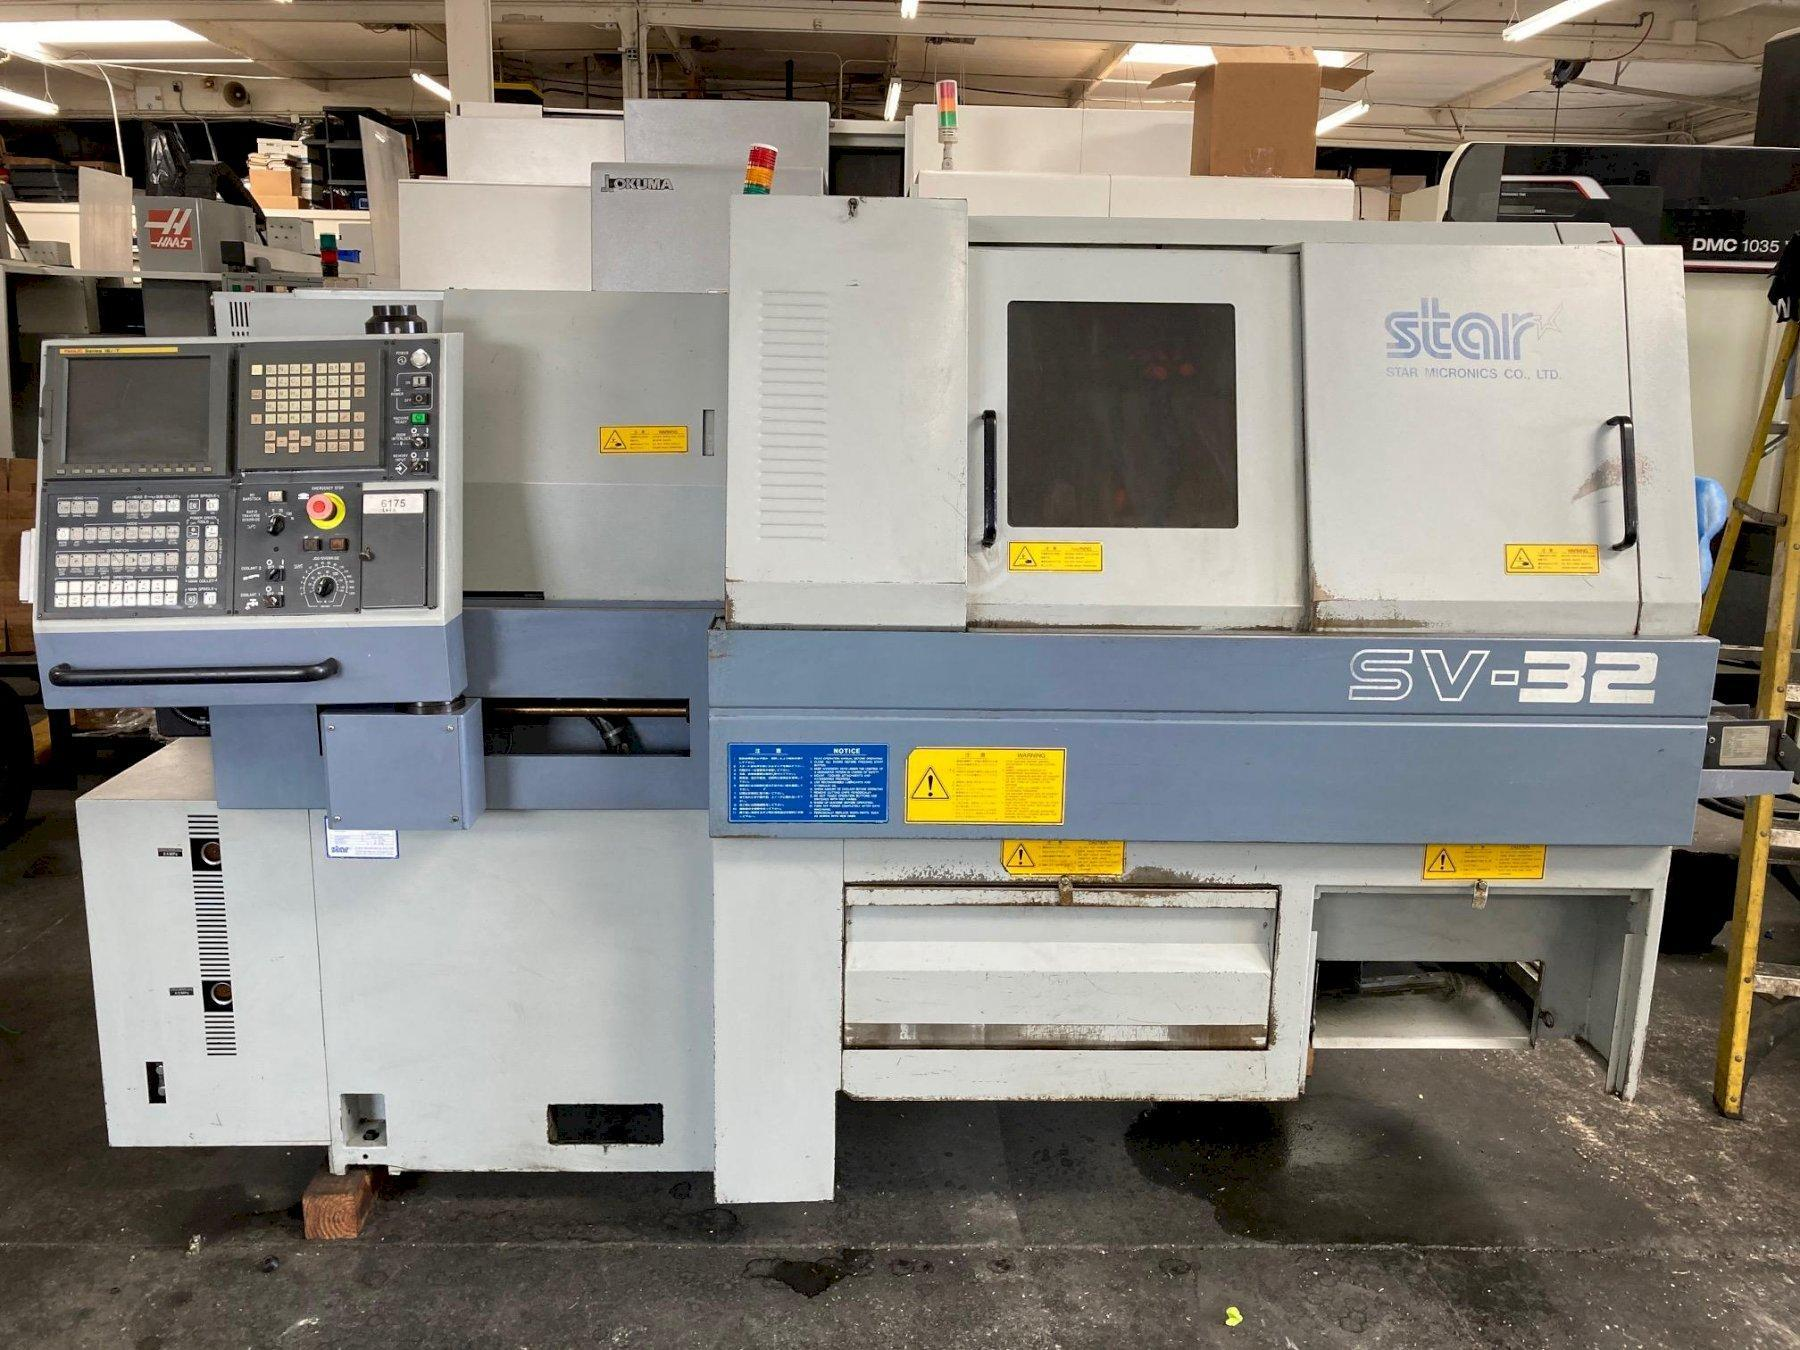 Star SV-32 CNC Swiss Lathe with: Fanuc 16i-T CNC Control, LNS Hydrobar Mini Sprint Bar Feeder, Tooling, and Parts Catcher.